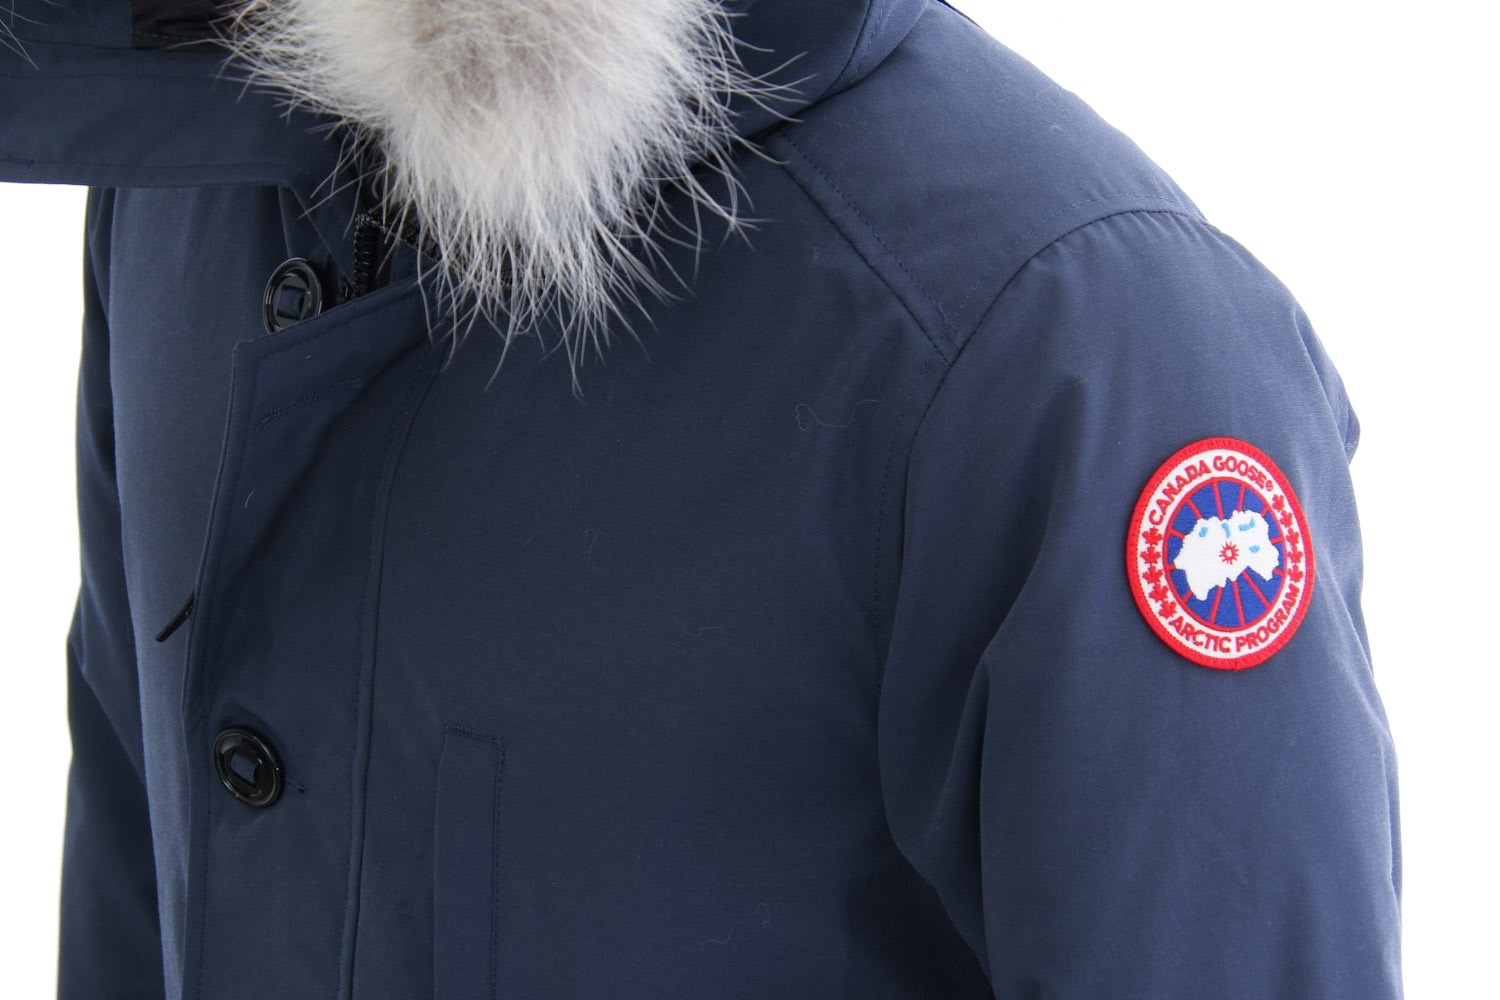 Canada Goose hats replica discounts - My Thoughts on Fur and the Irresponsible Plague of Canada Goose ...